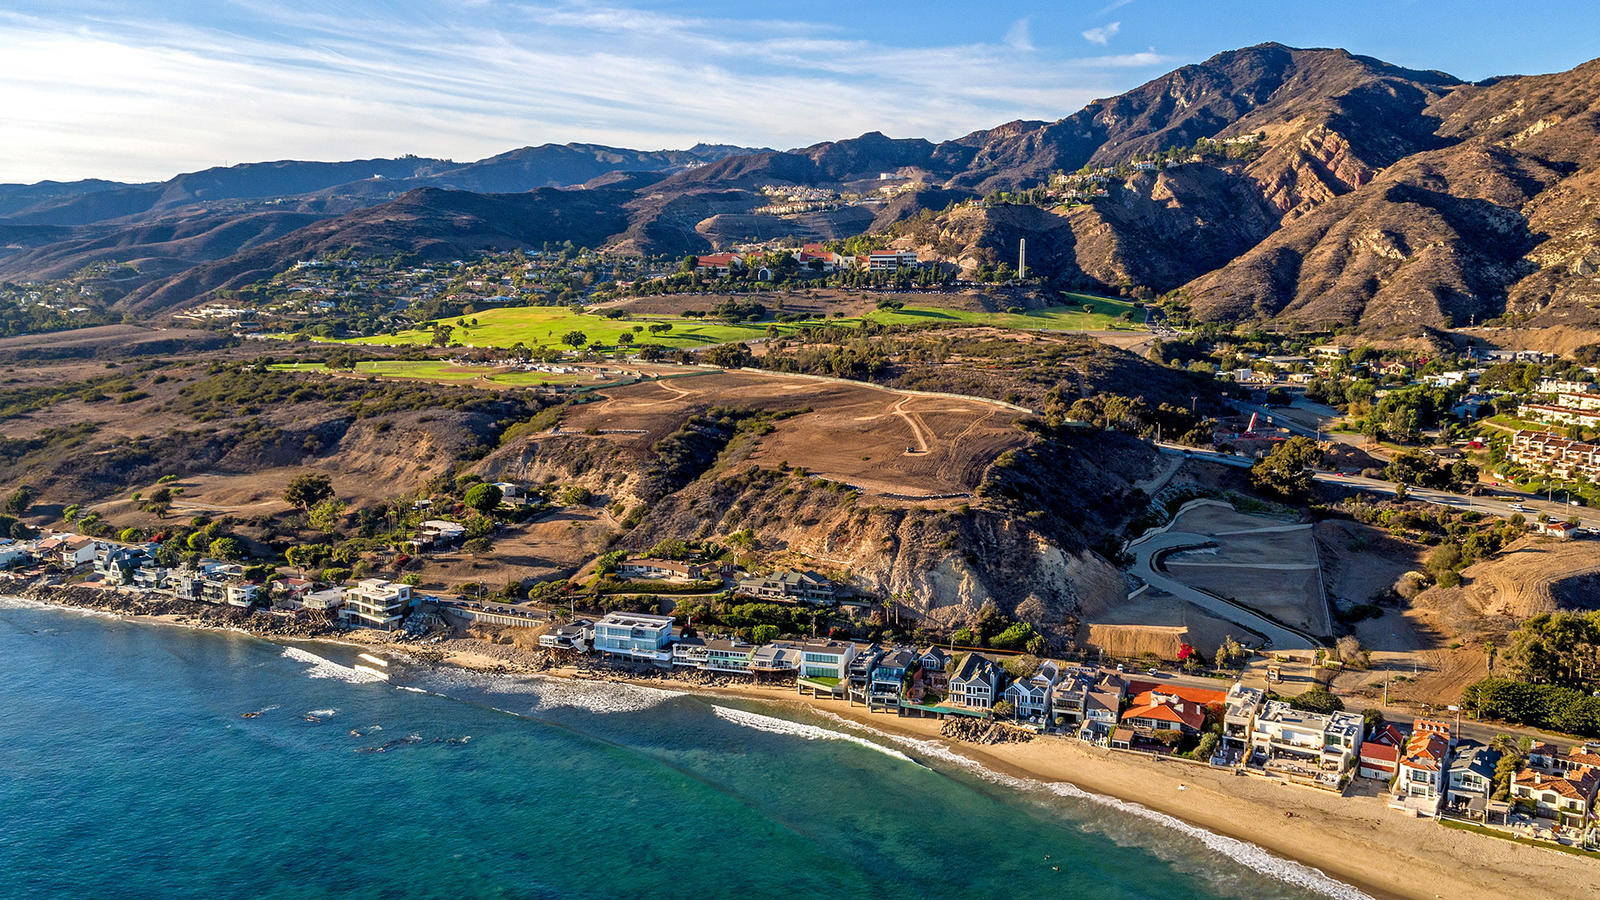 Developer Scott Gillen bought this undeveloped 24-acre property above Malibu Colony. (Berlyn Photography)